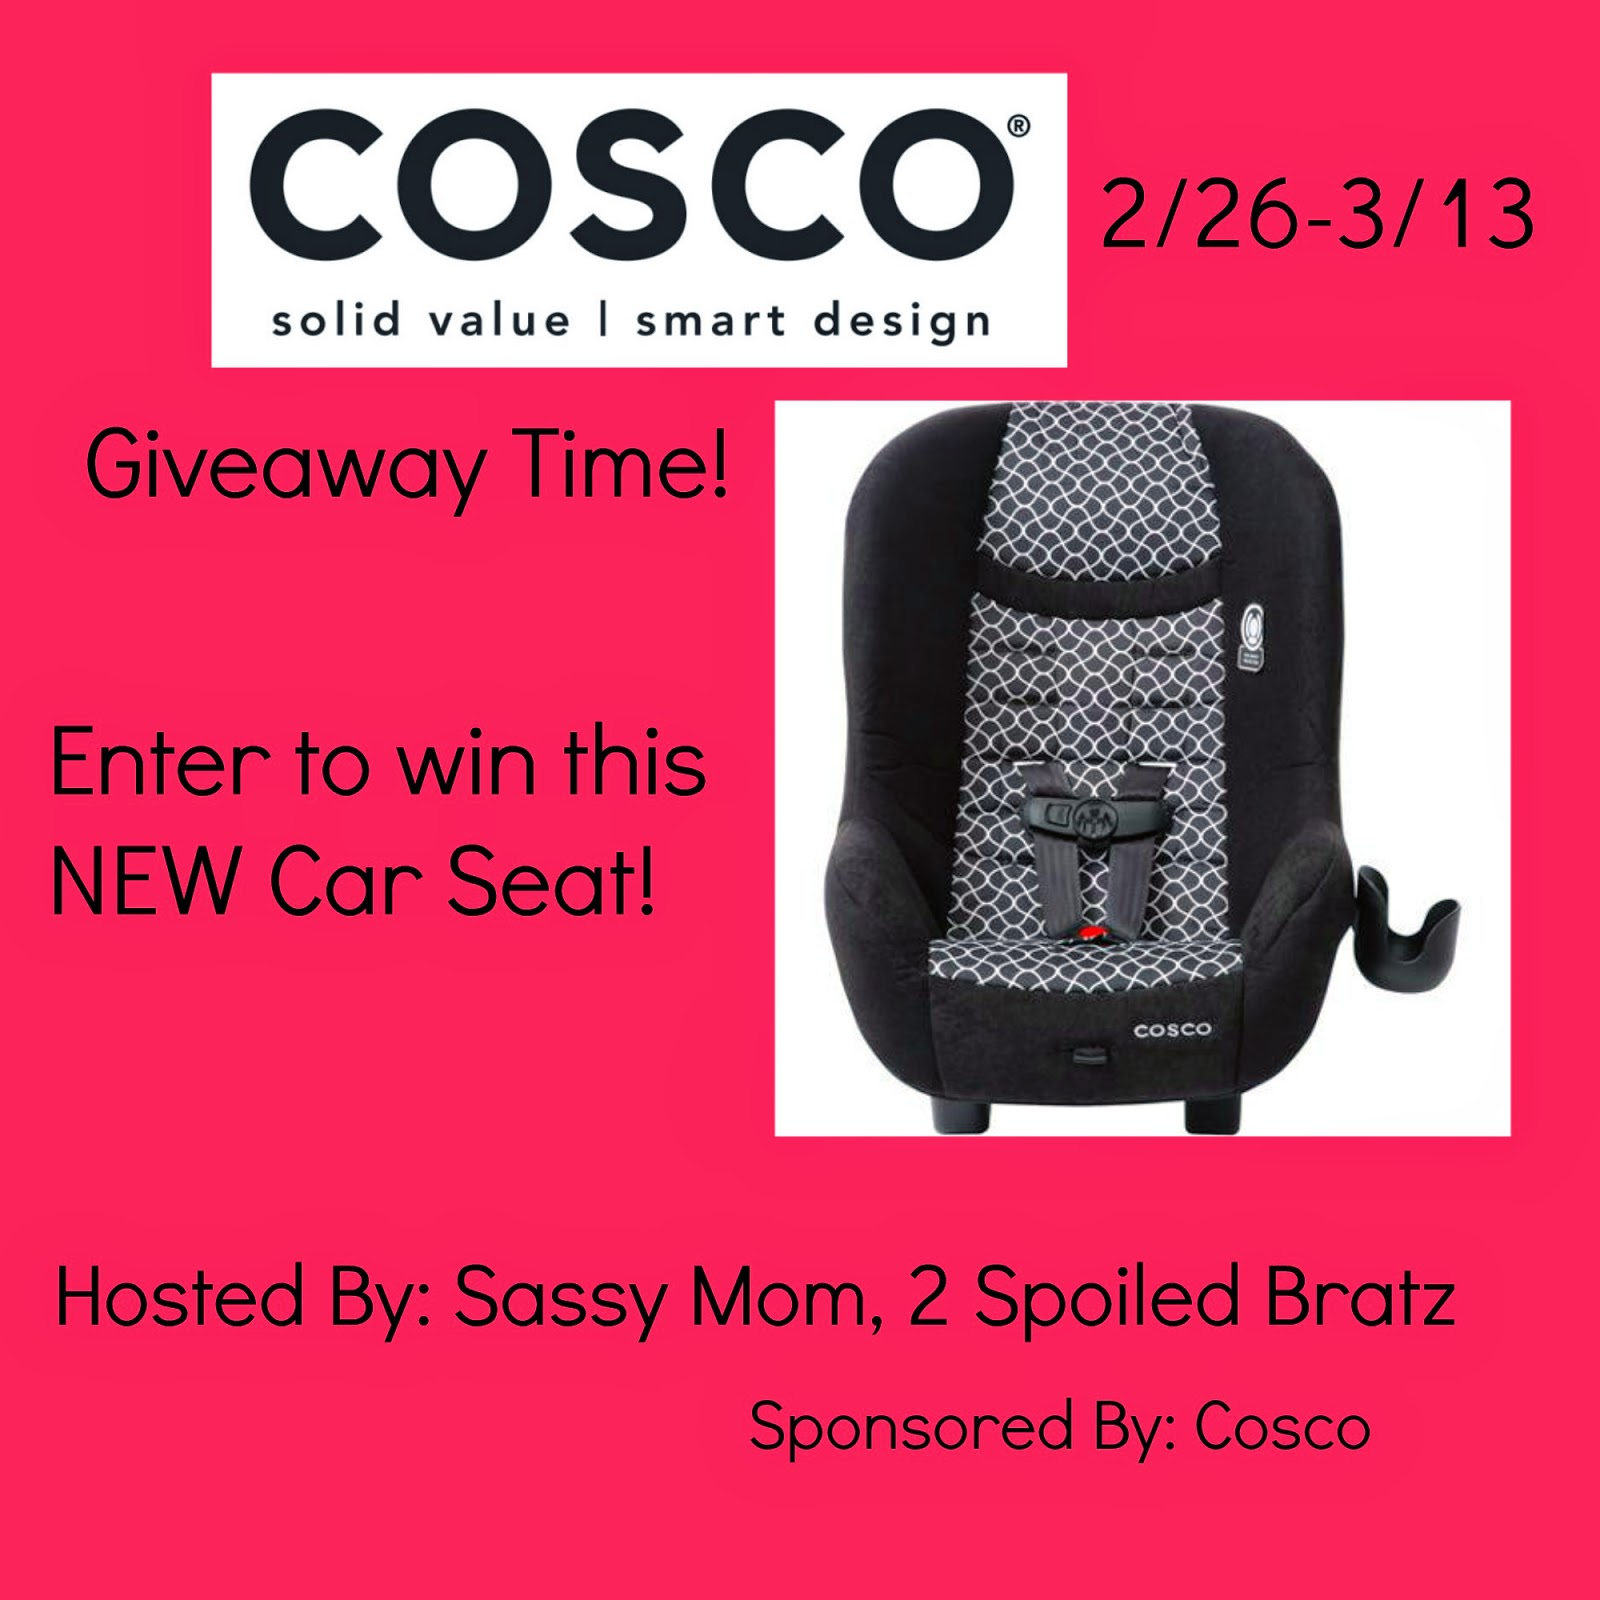 Cosco Car Seat Giveaway US Ends 3/13